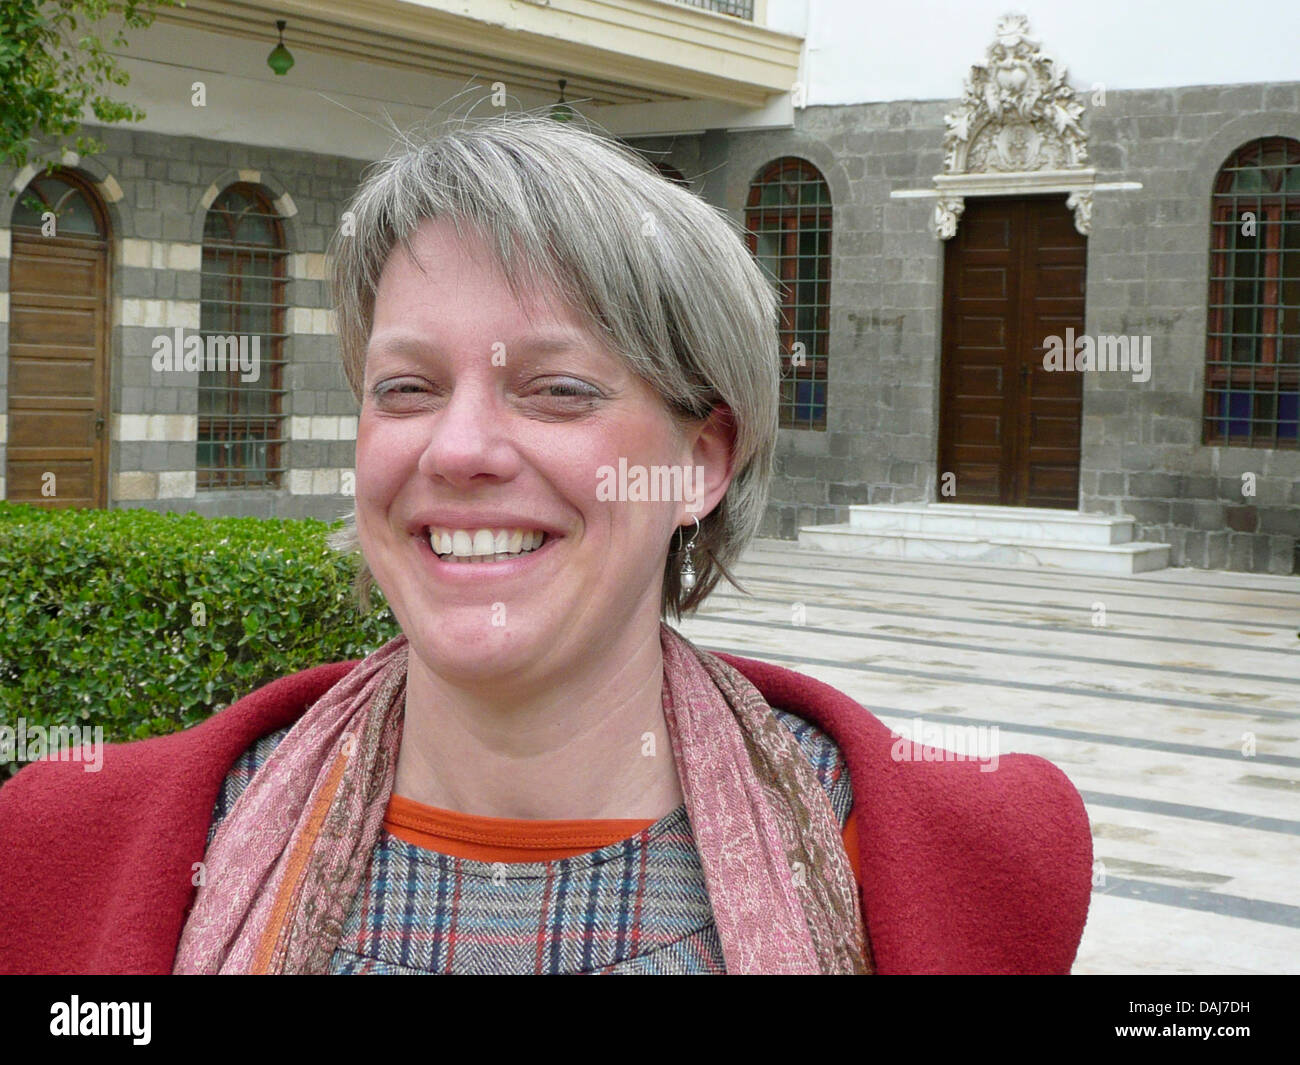 German conservator Anke Scharrahs is pictured in an inner court yard of a residence in Damascus, Syria, 16 March Stock Photo